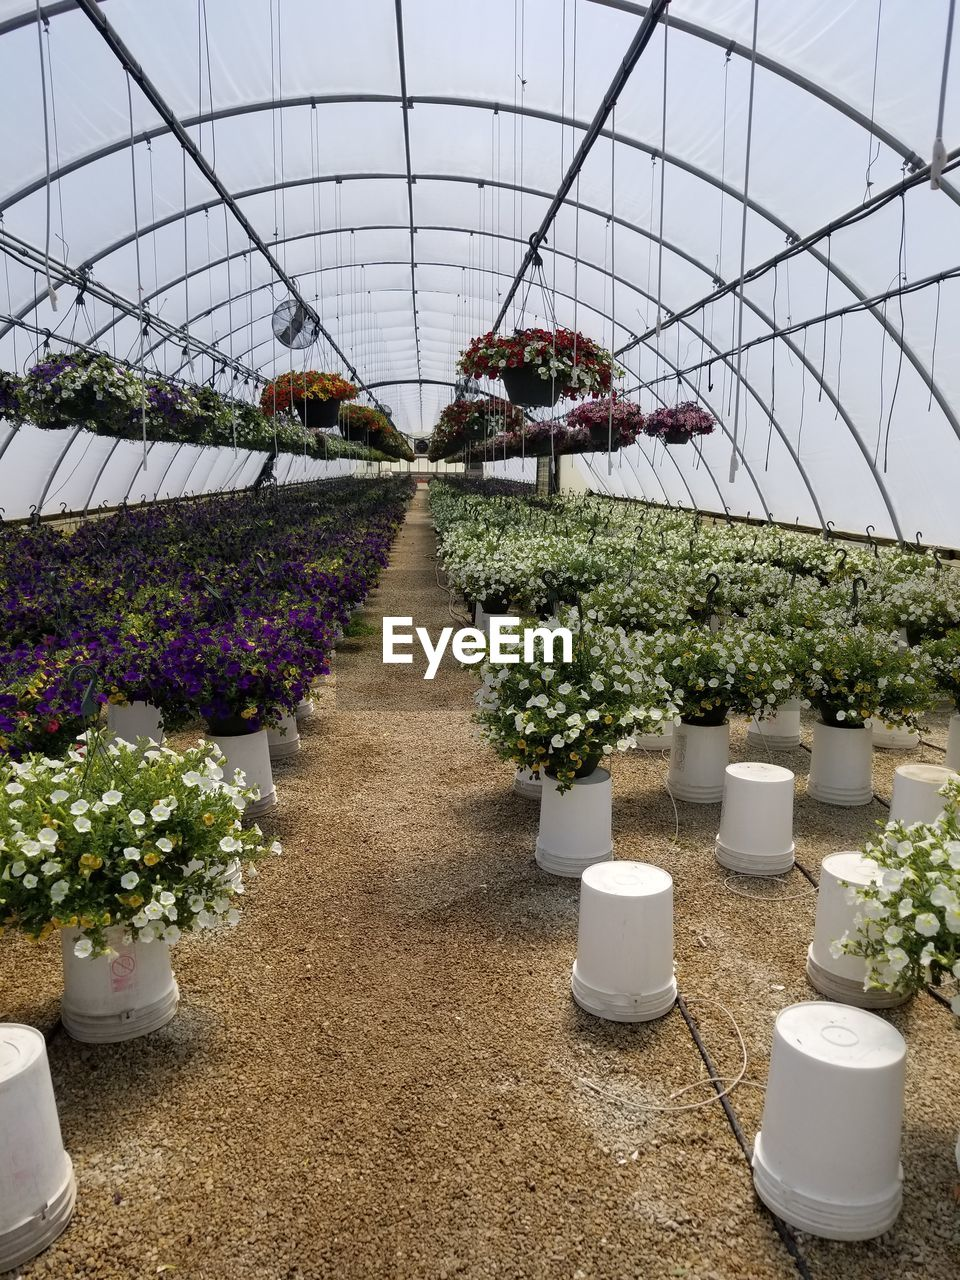 plant, greenhouse, growth, flowering plant, plant nursery, flower, nature, botany, no people, beauty in nature, potted plant, day, indoors, in a row, agriculture, freshness, flower pot, arrangement, vulnerability, ceiling, gardening, purple